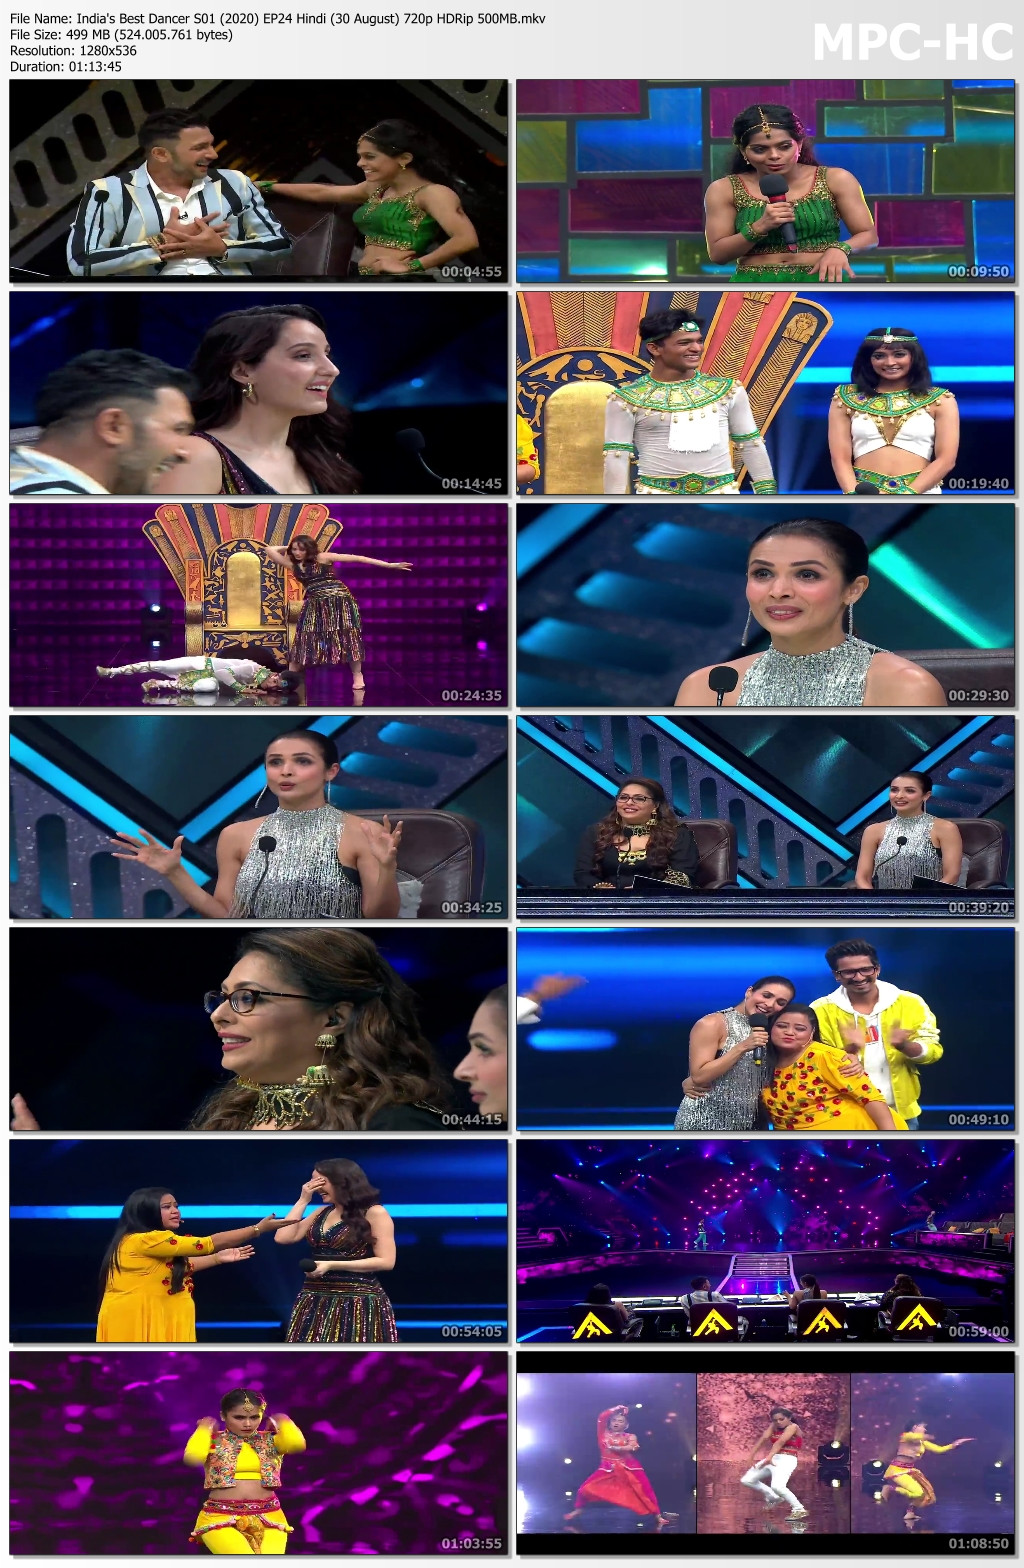 India-s-Best-Dancer-S01-2020-EP24-Hindi-30-August-720p-HDRip-500-MB-mkv-thumbs